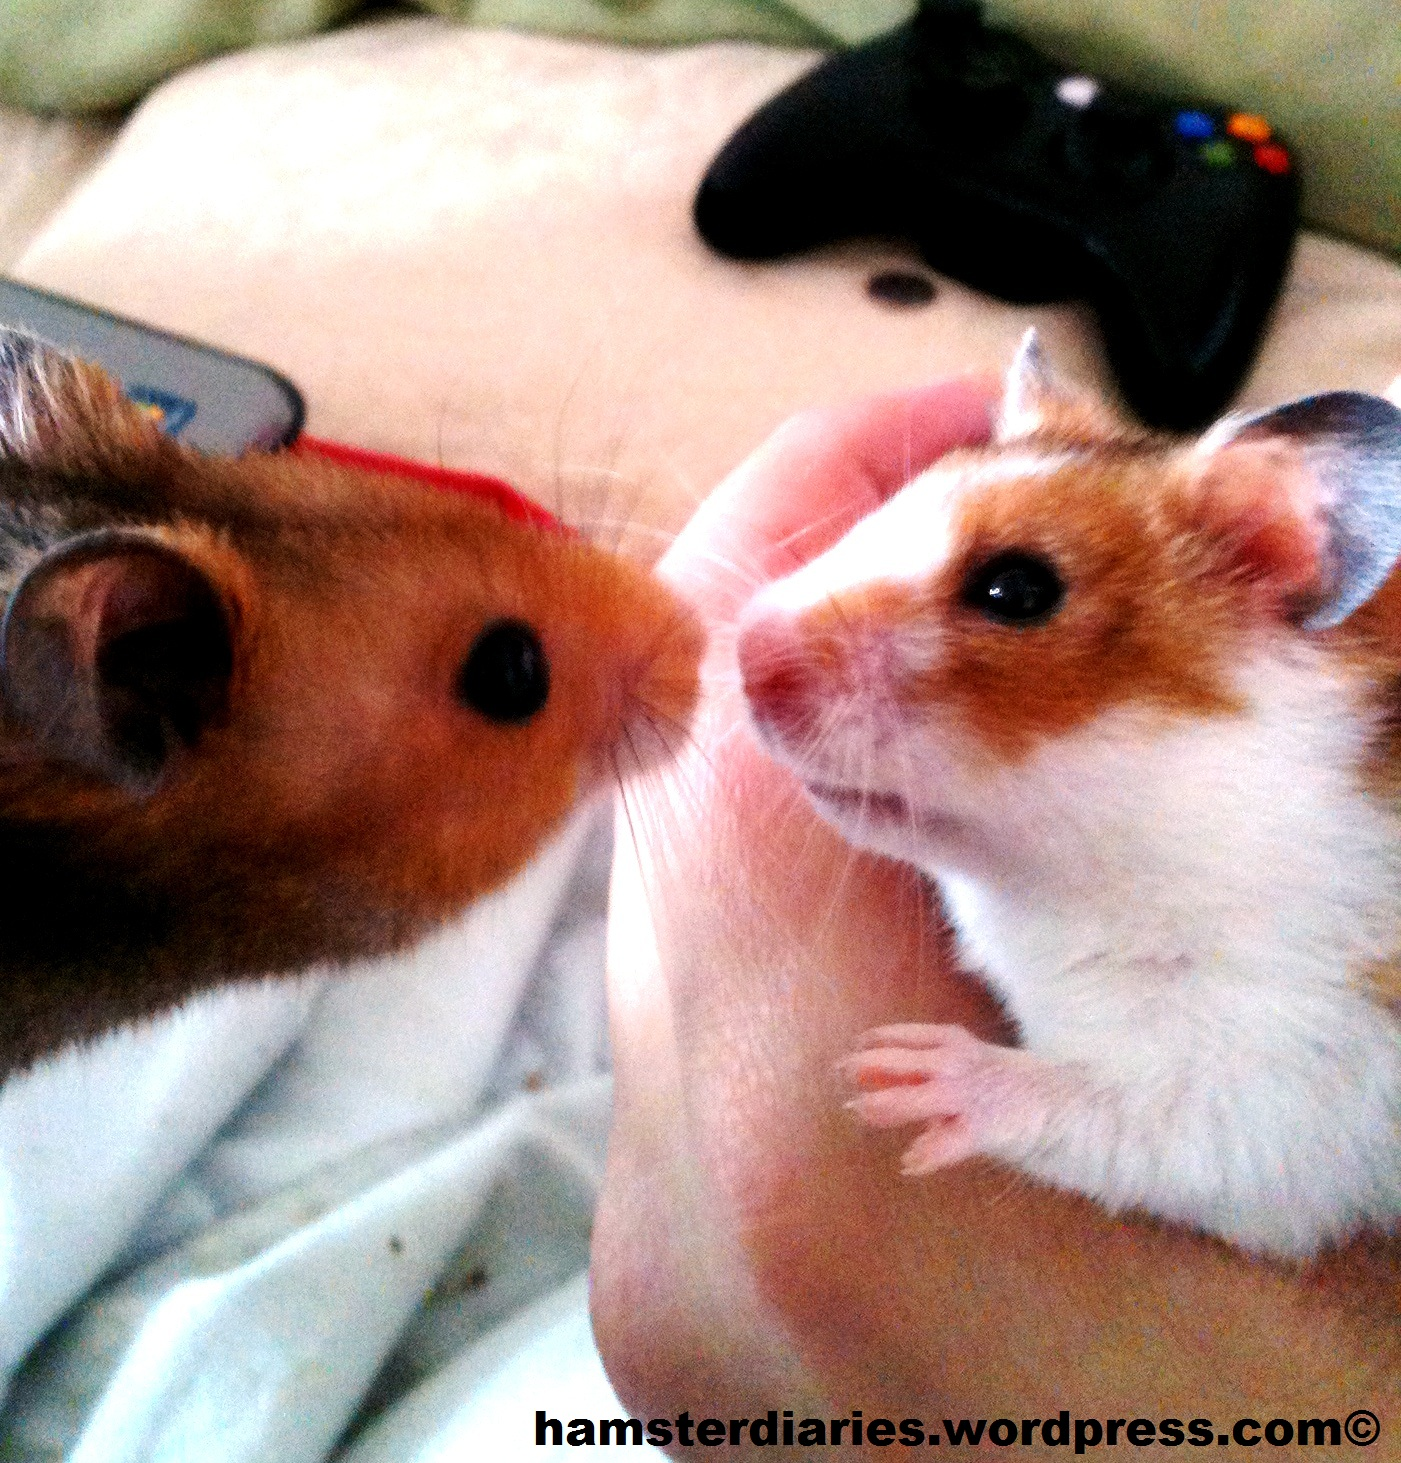 The Hamster Porn